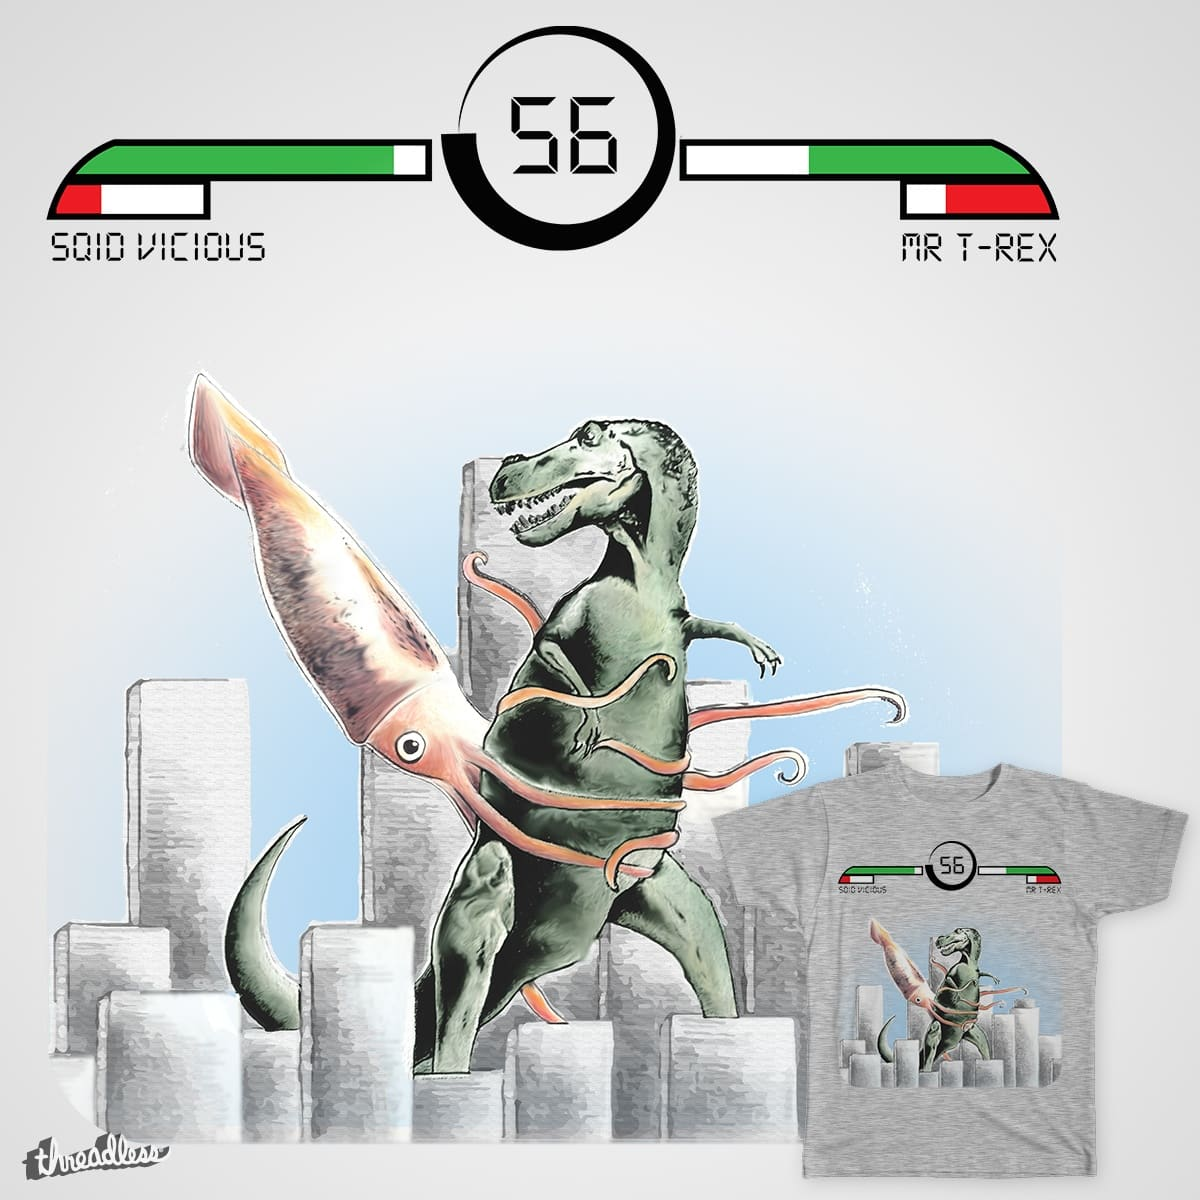 Squid Vicious VS Mr. T-Rex by Loremnzo and RiccardoXIII on Threadless